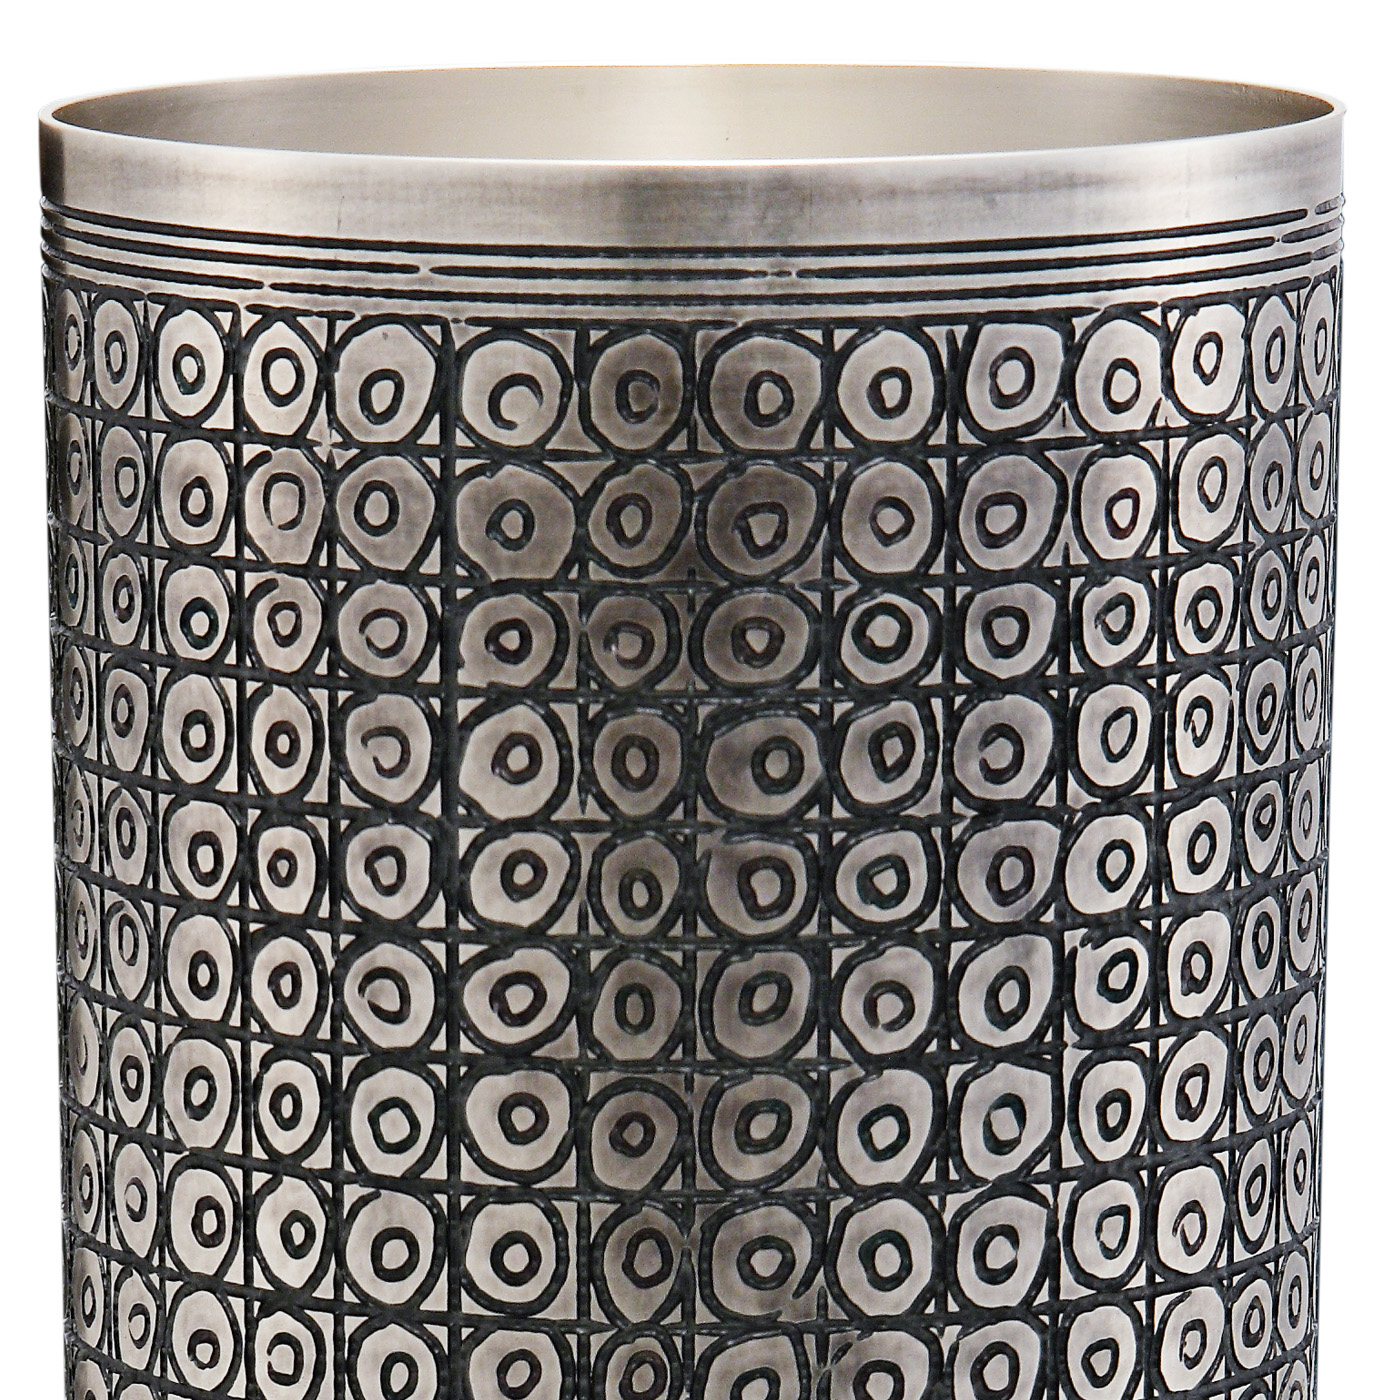 Sumer Vase - Unique vase crafted in a silver-plated alloy has a beautiful pattern etched into it which is the product of much meticulous work in order to achieve the intricate texture and design. | Matter of Stuff